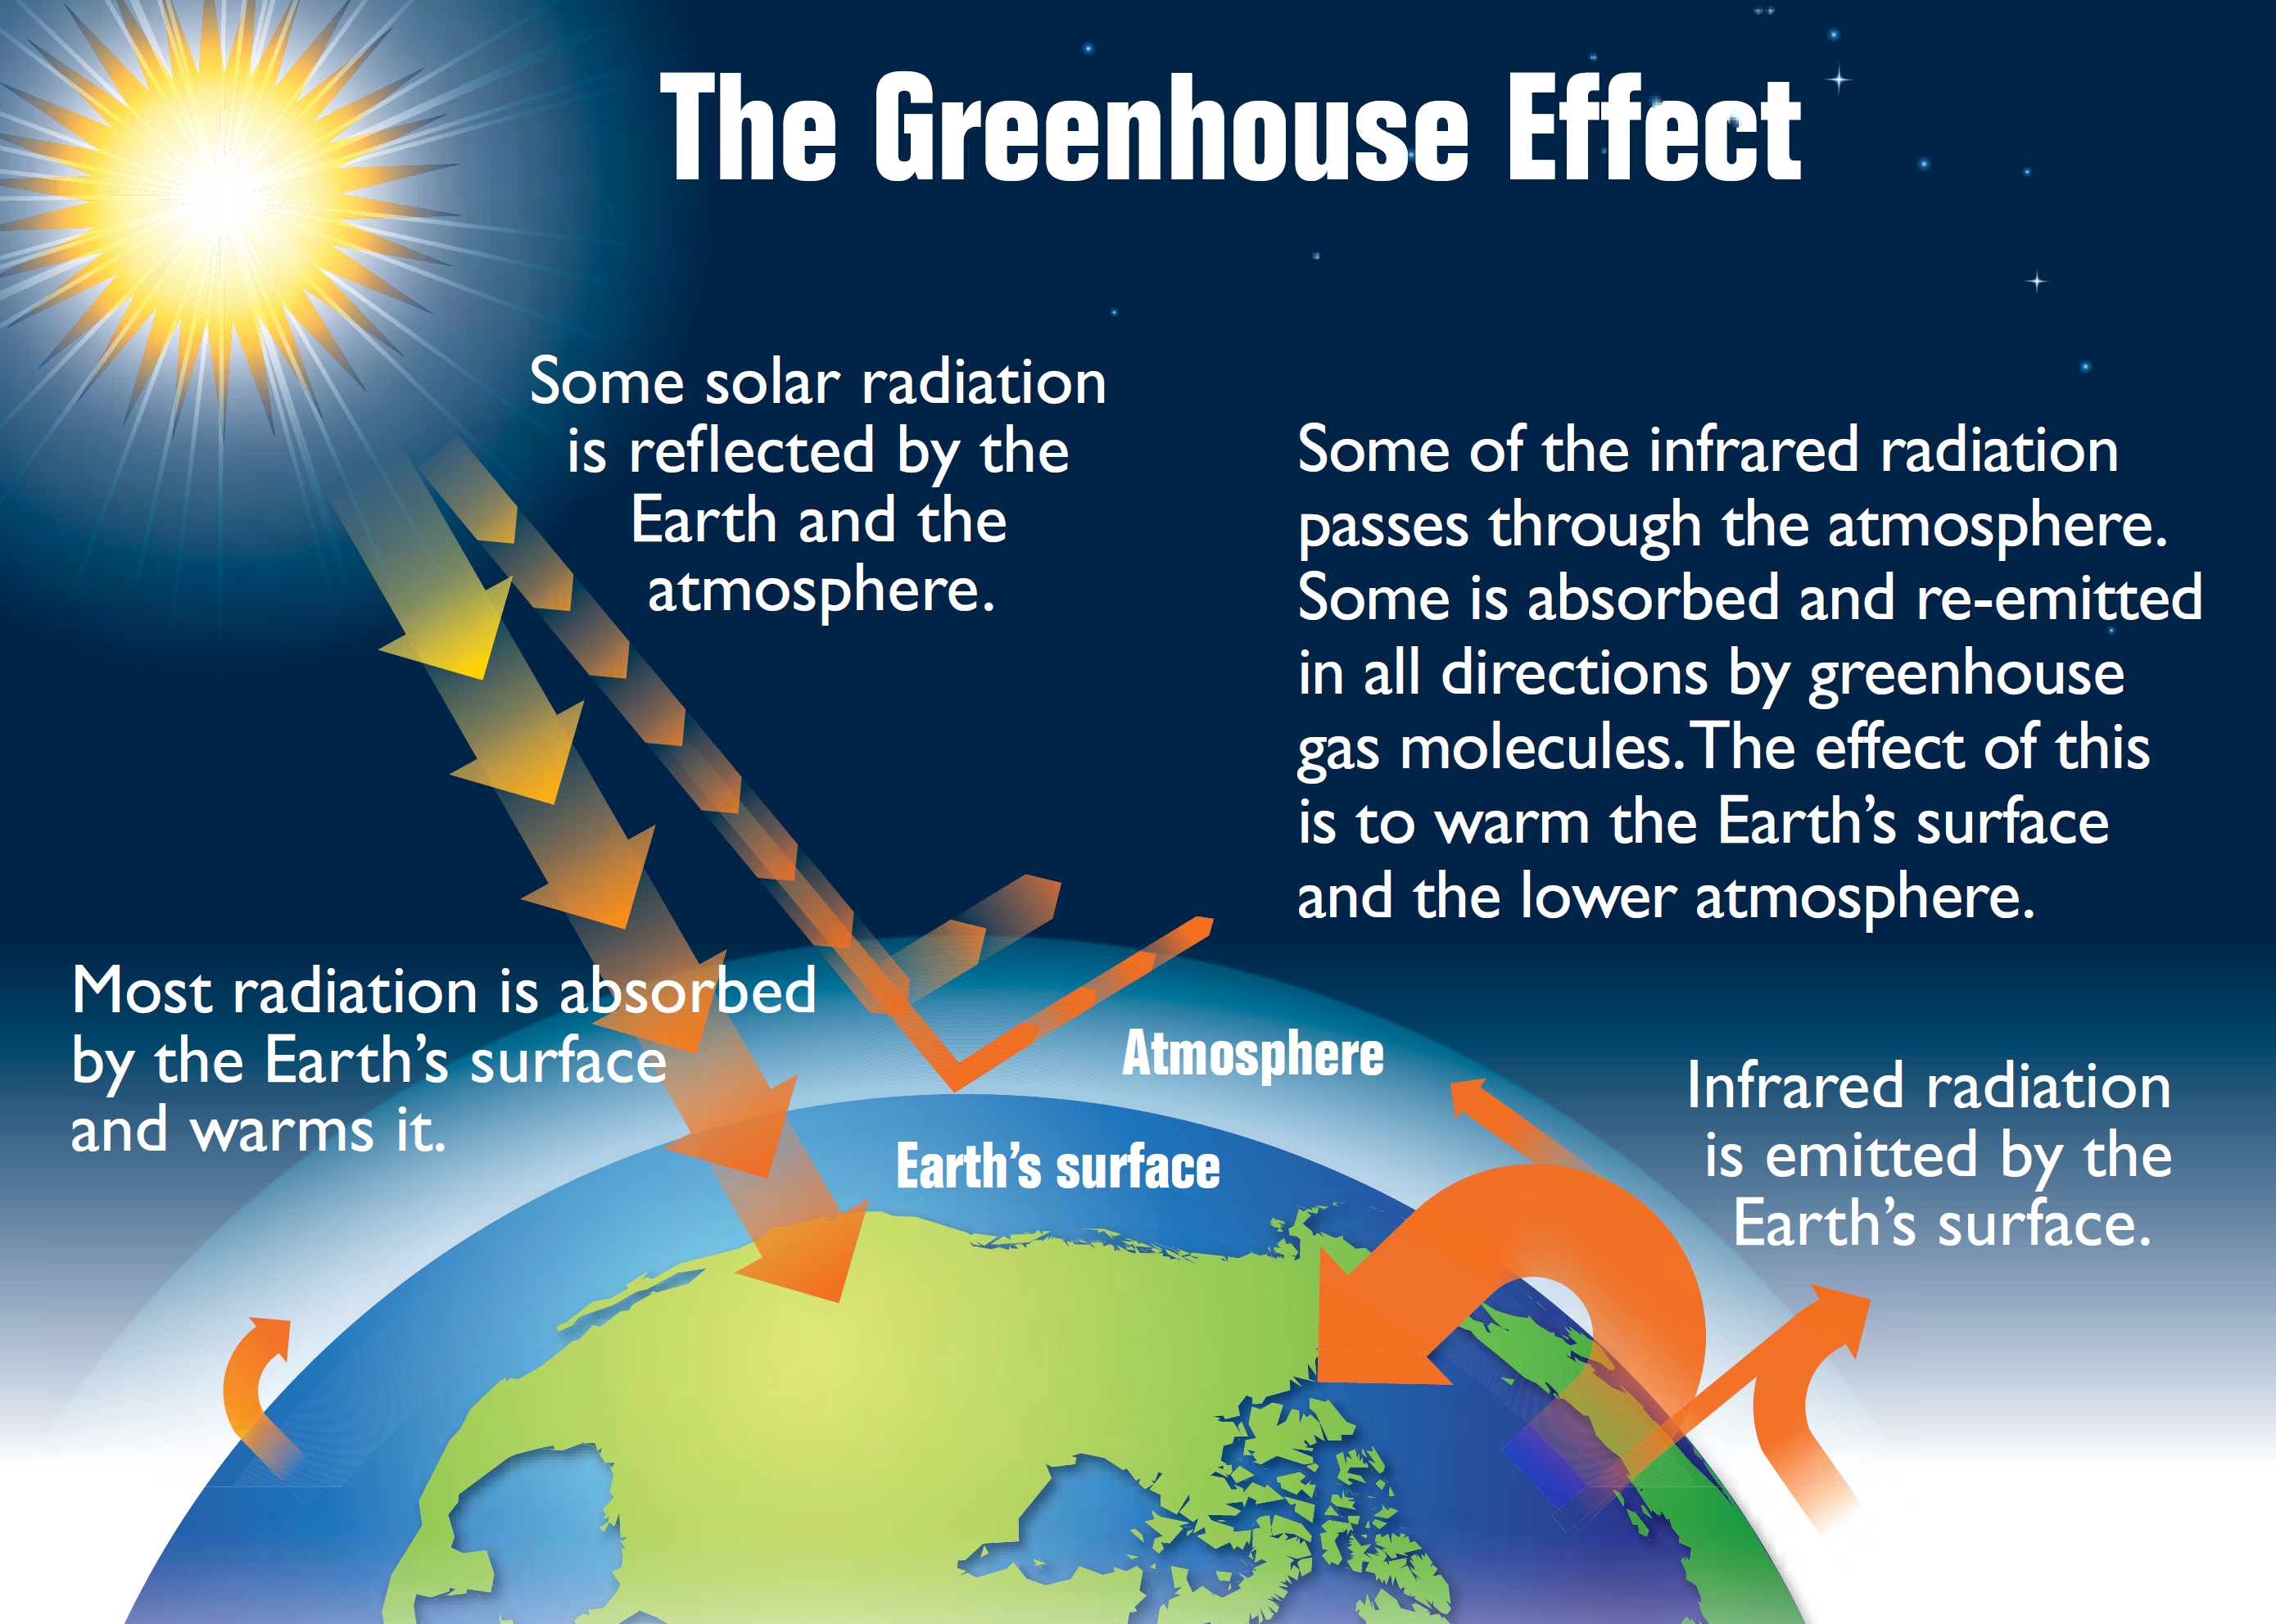 an introduction to the history and the issue of global warming Introduction the fact that carbon dioxide is a 'greenhouse gas' - a gas that prevents a certain amount of heat radiation escaping back to space and thus maintains a generally warm climate on earth, goes back to an idea that was first conceived, though not specifically with respect to co2, nearly 200 years ago.